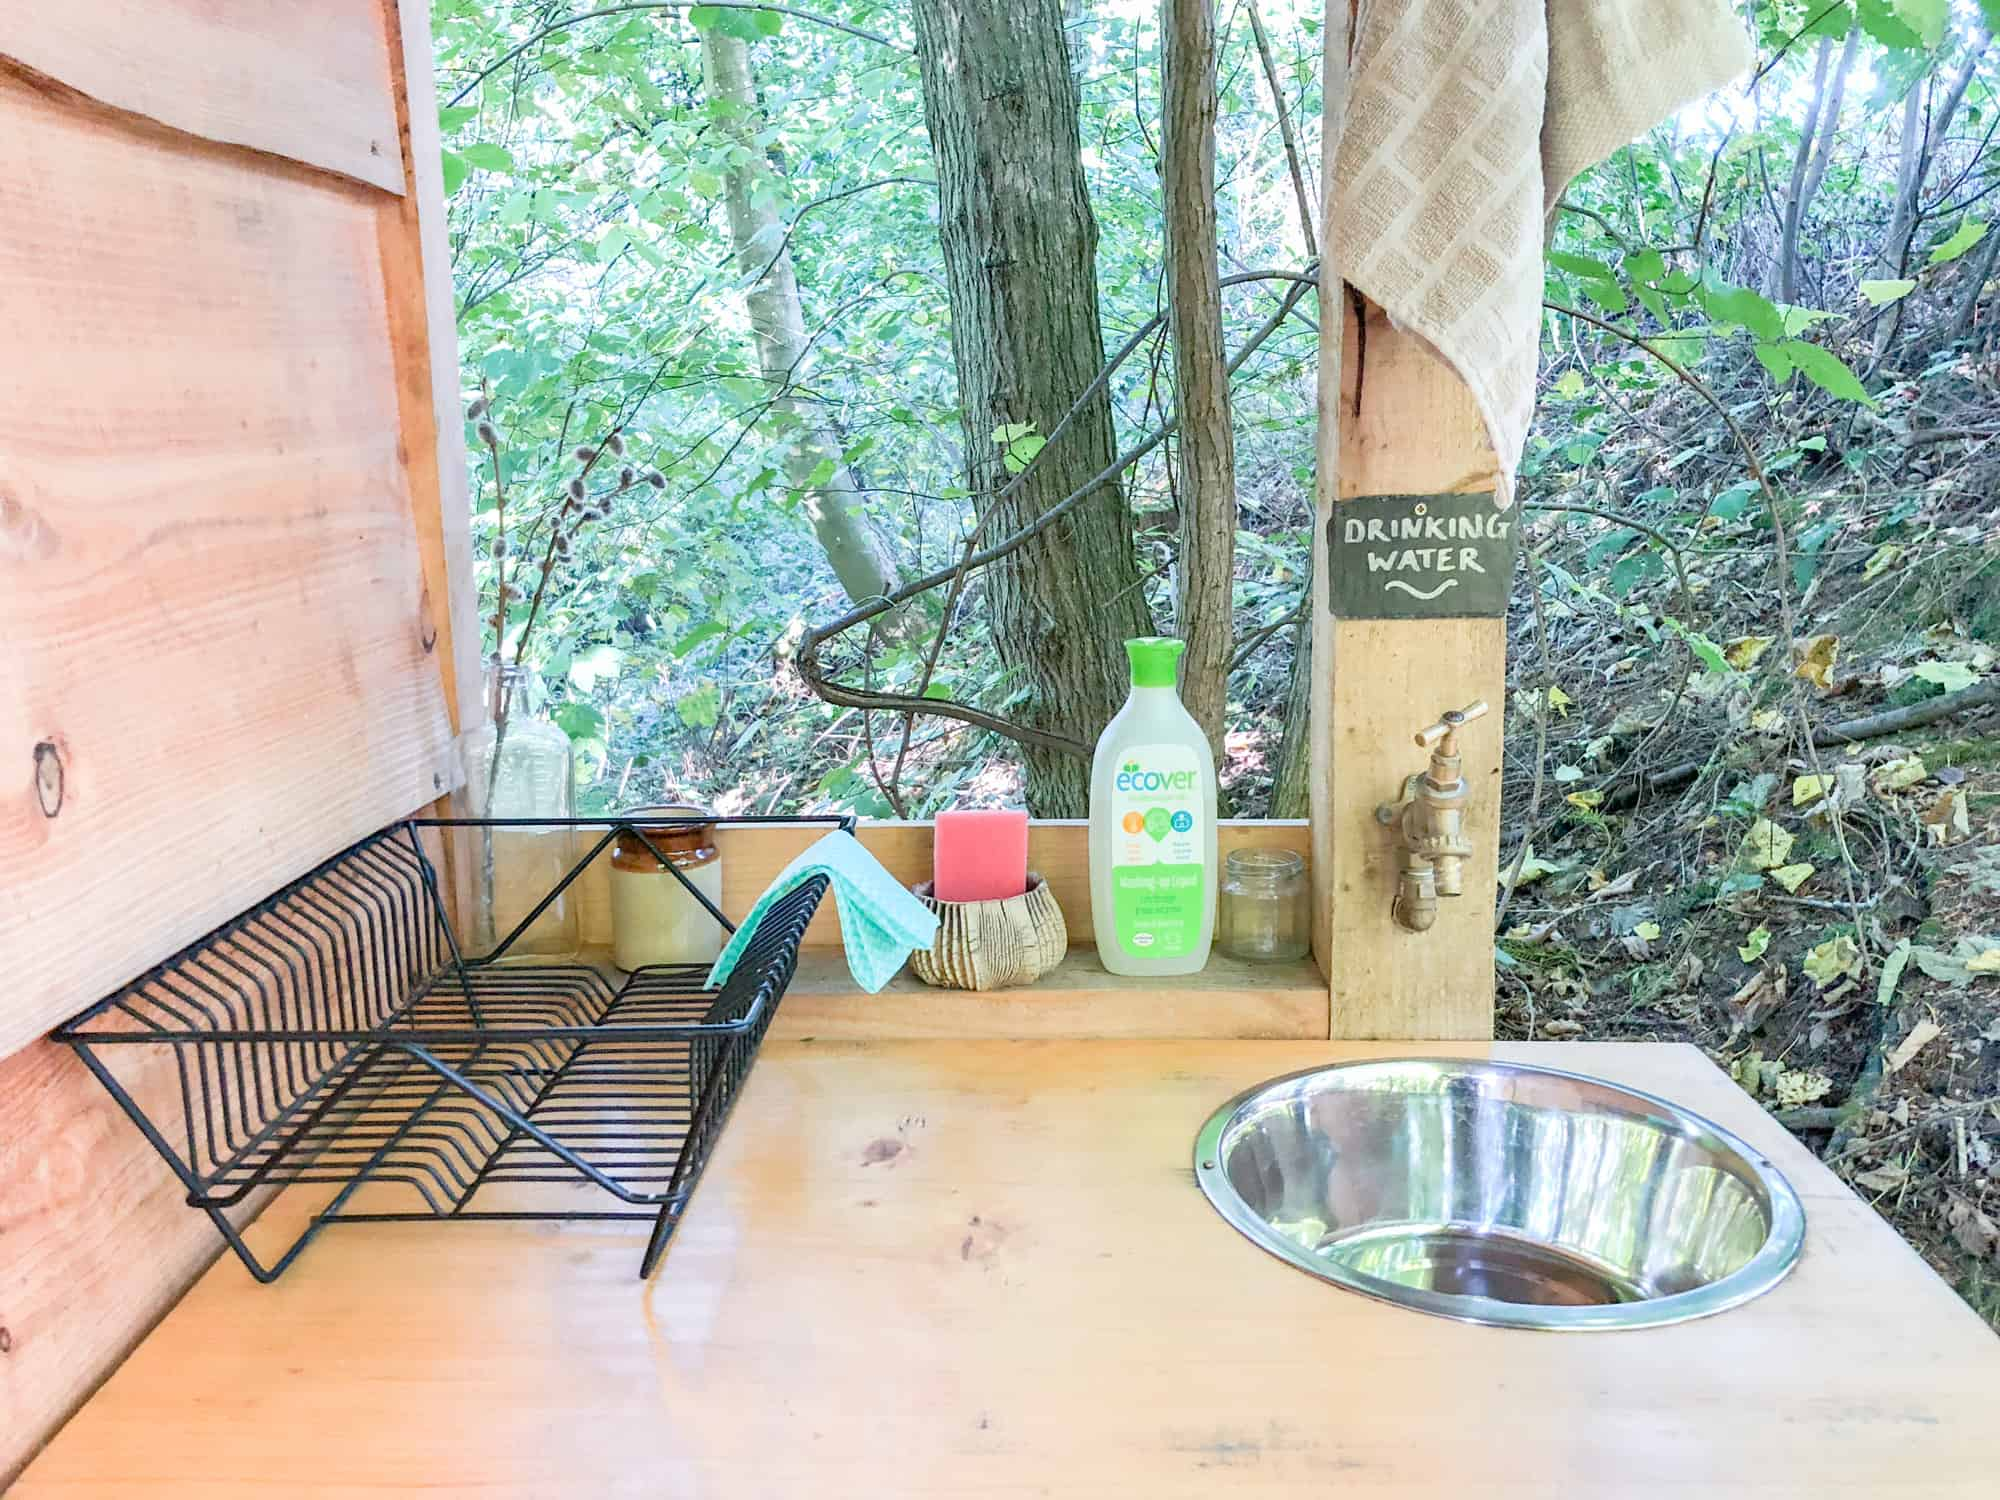 Glamping checklist - eco soap, sponge and drinking water